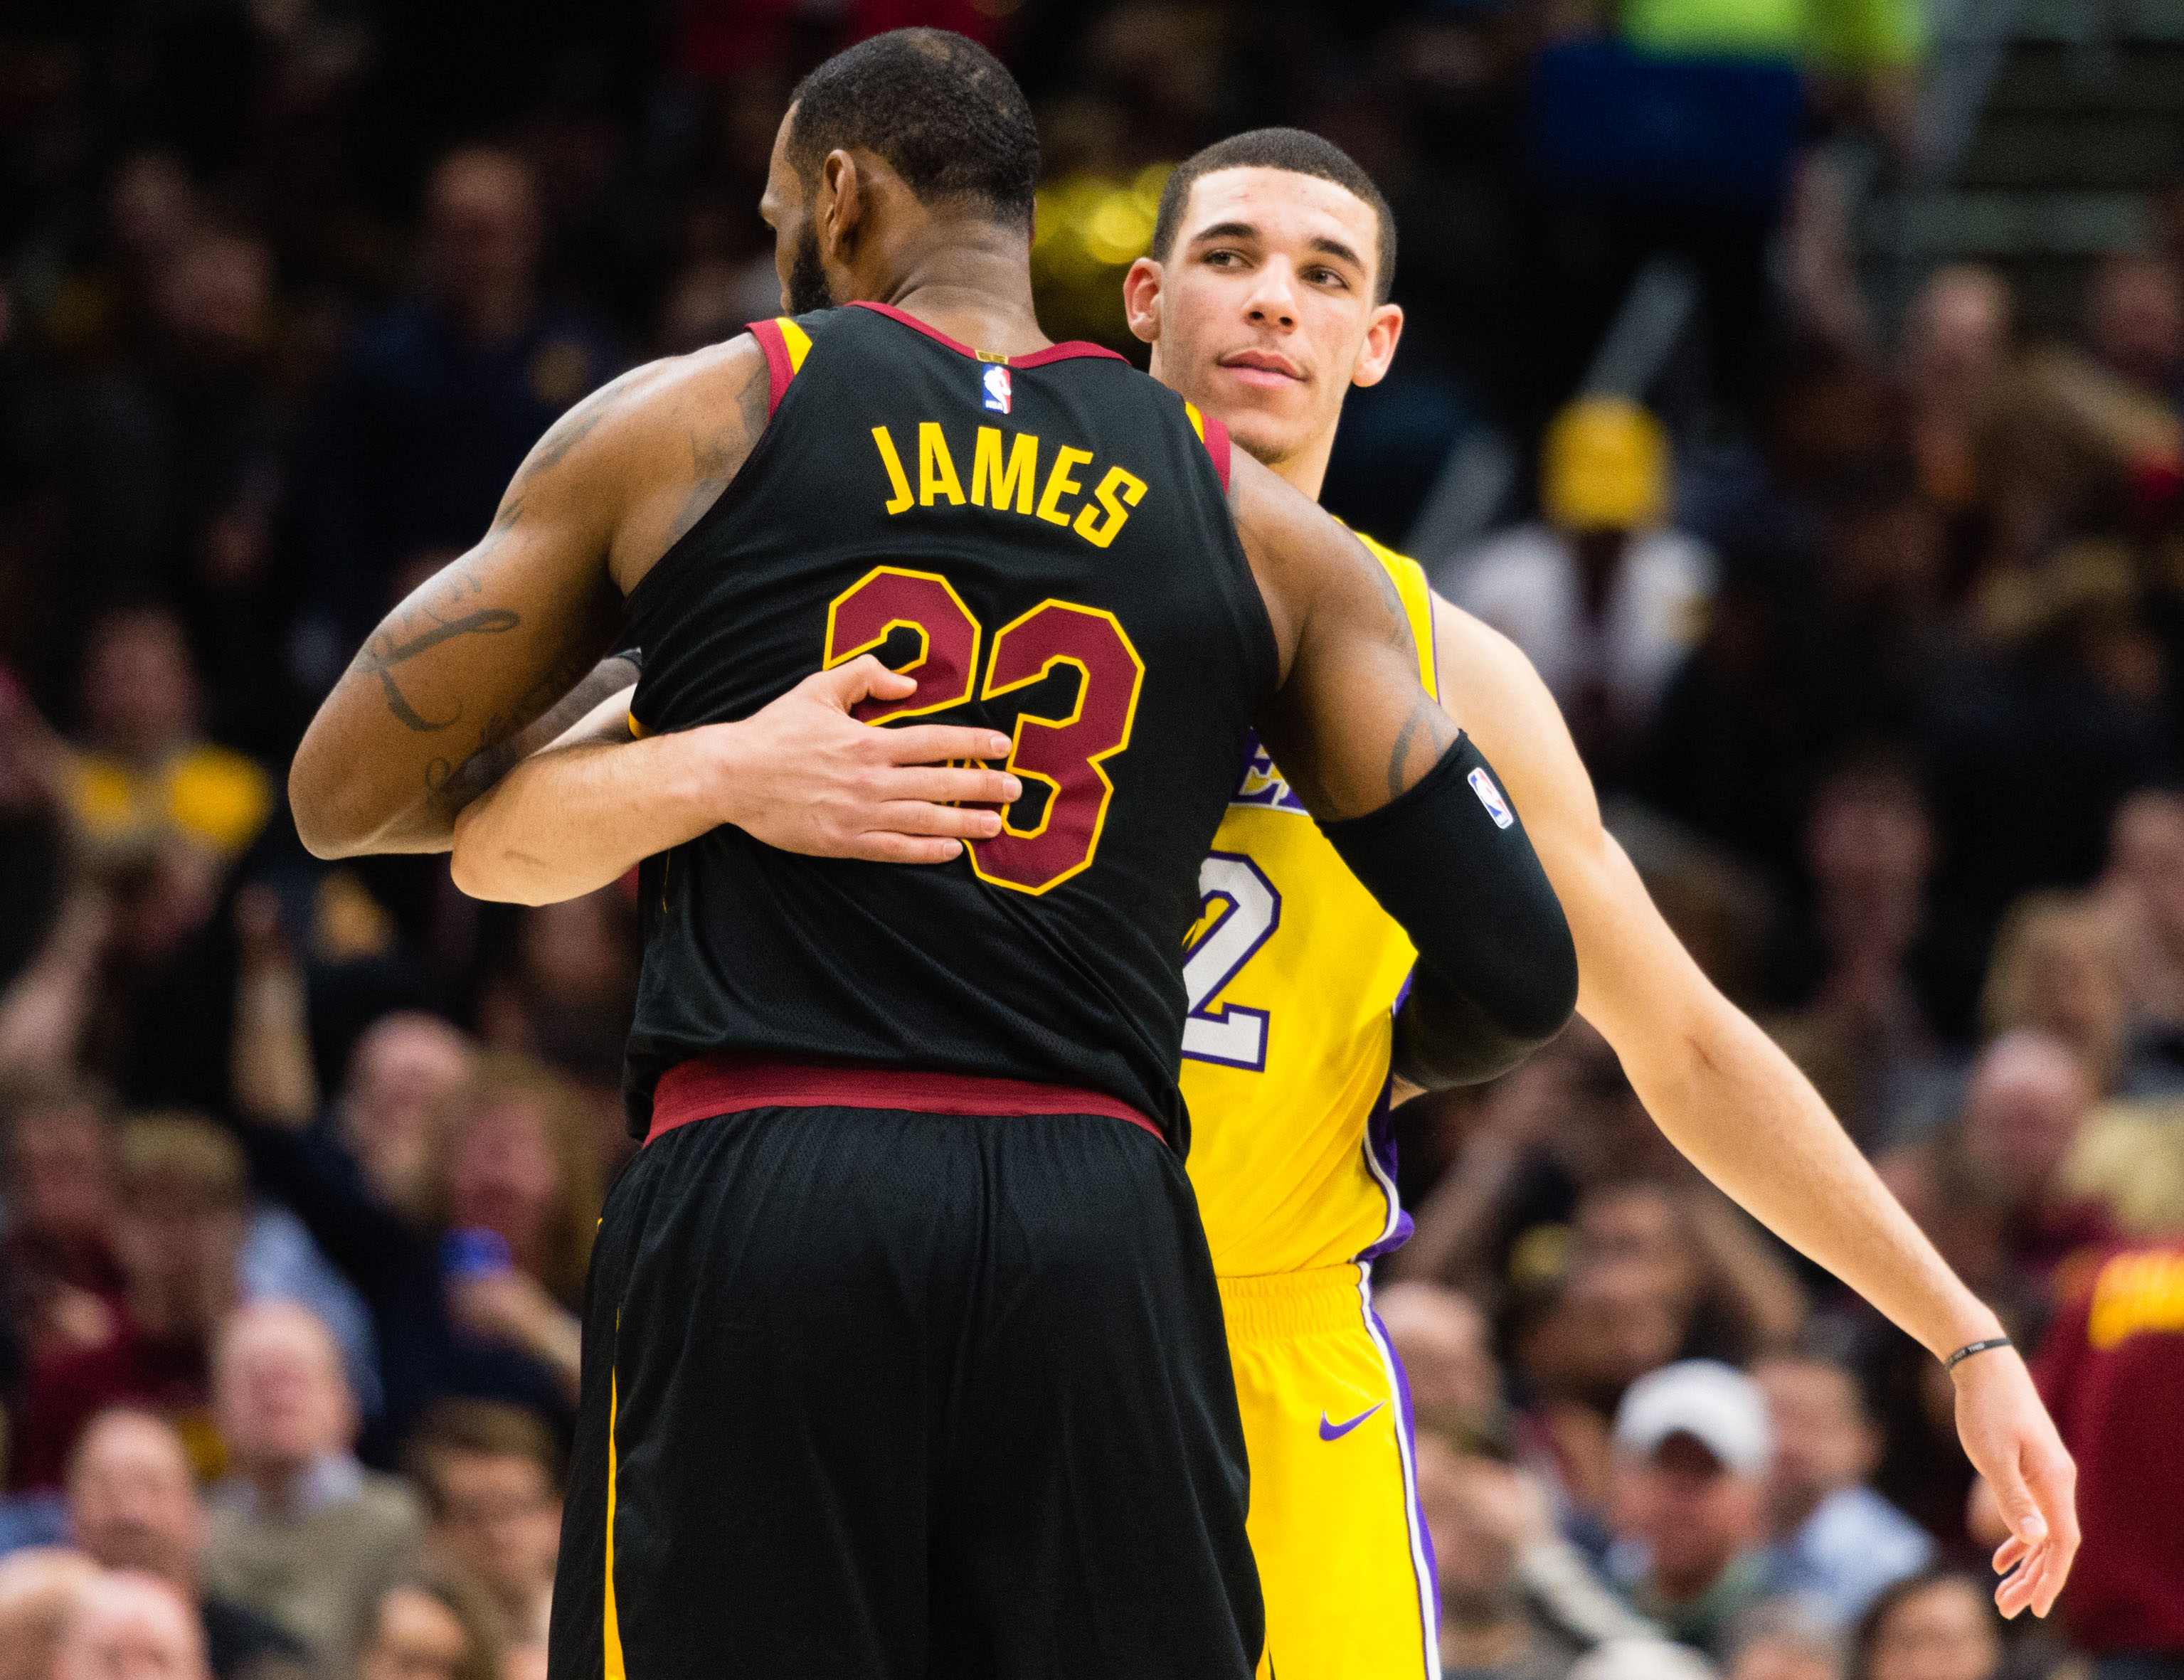 LeBron James joining the Lakers: See James' goodbye message to Cleveland